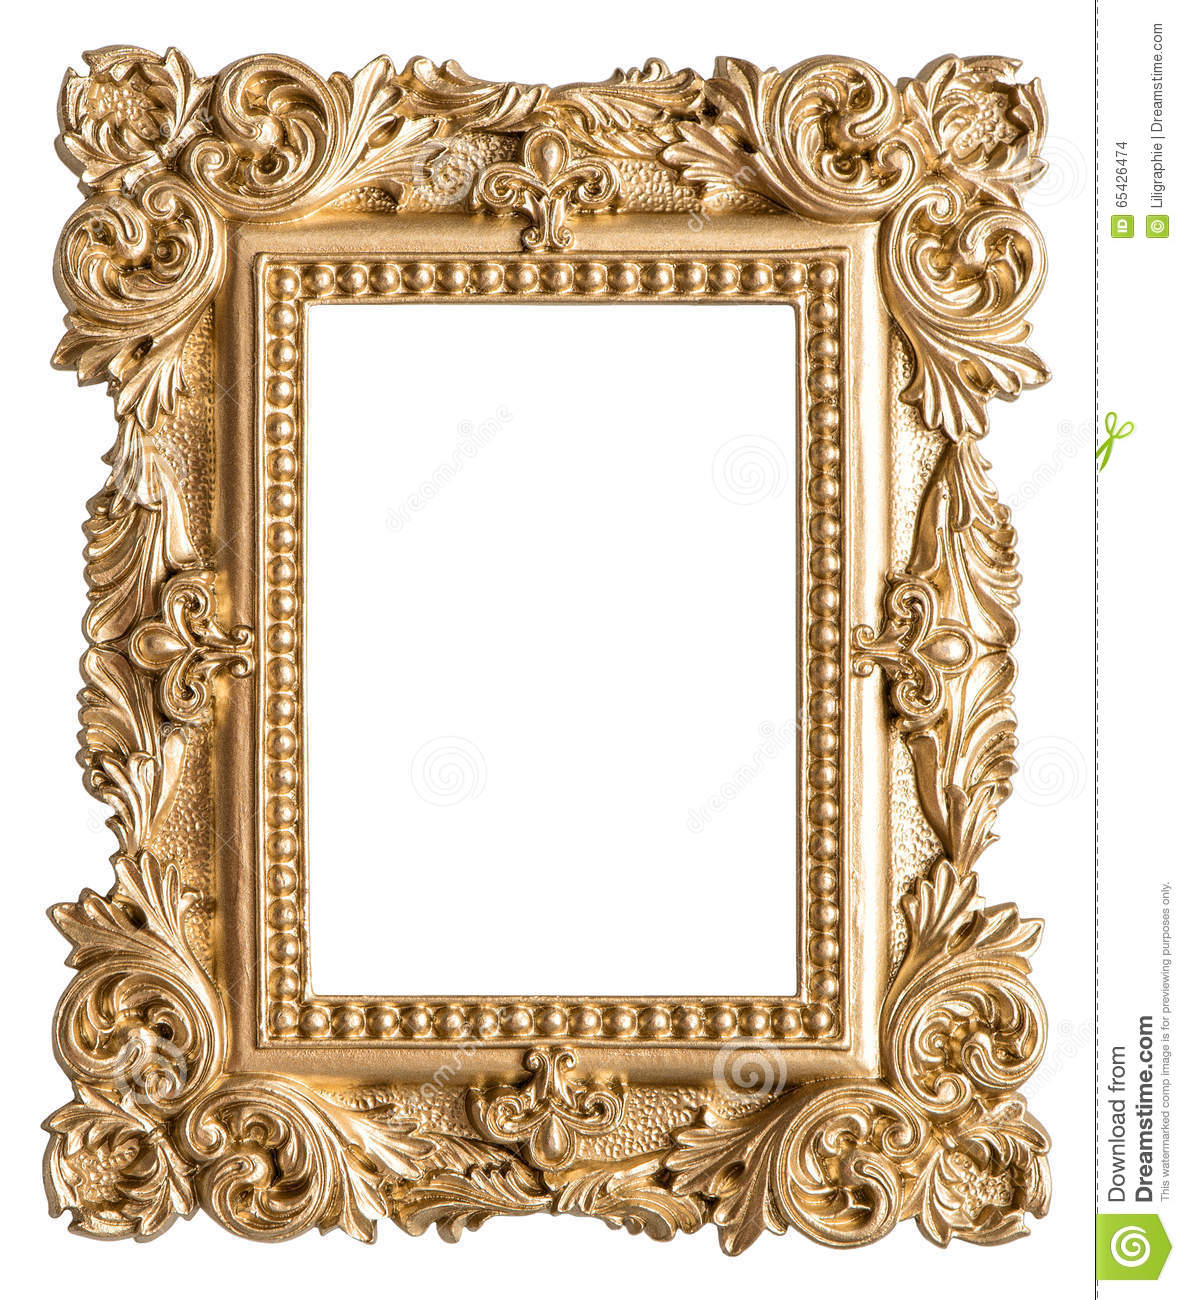 golden picture frame baroque style vintage art object stock photo image of blank white 65426474. Black Bedroom Furniture Sets. Home Design Ideas